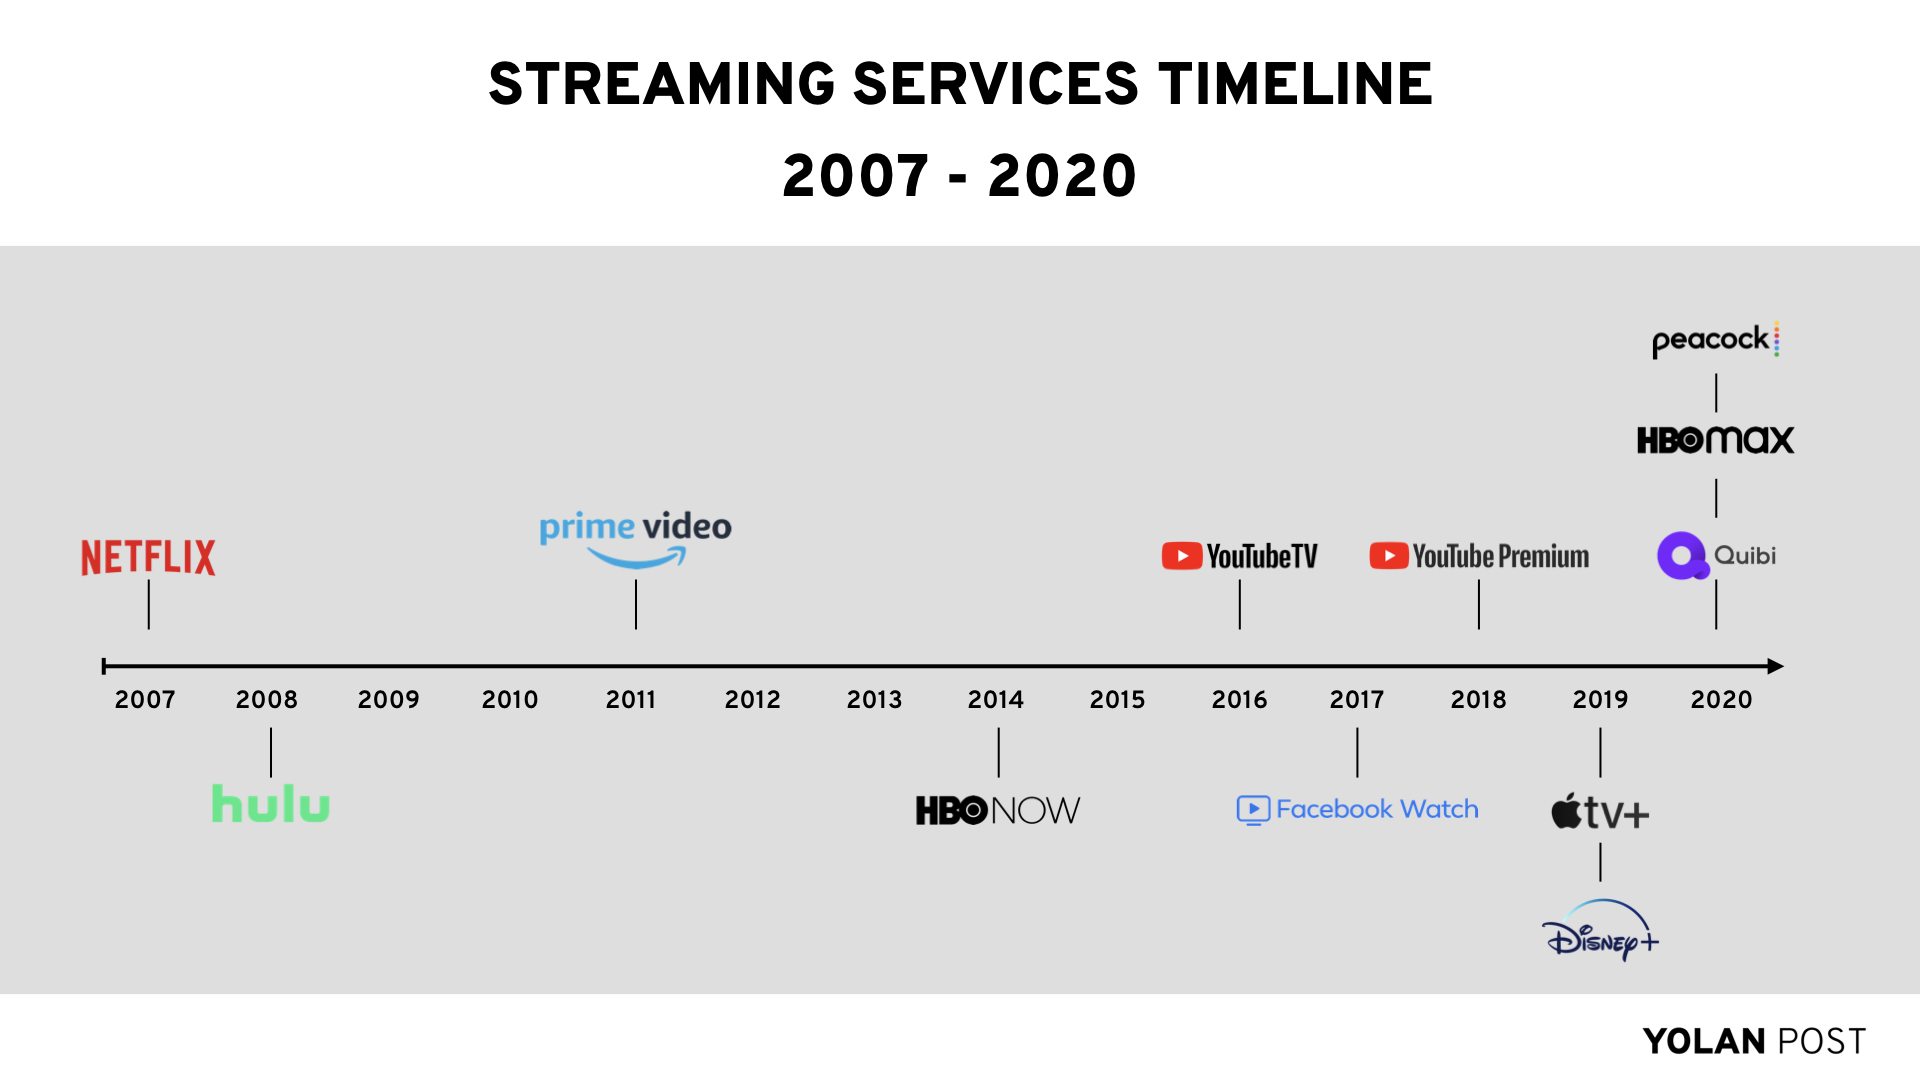 Streaming Services Timeline 2007-2020